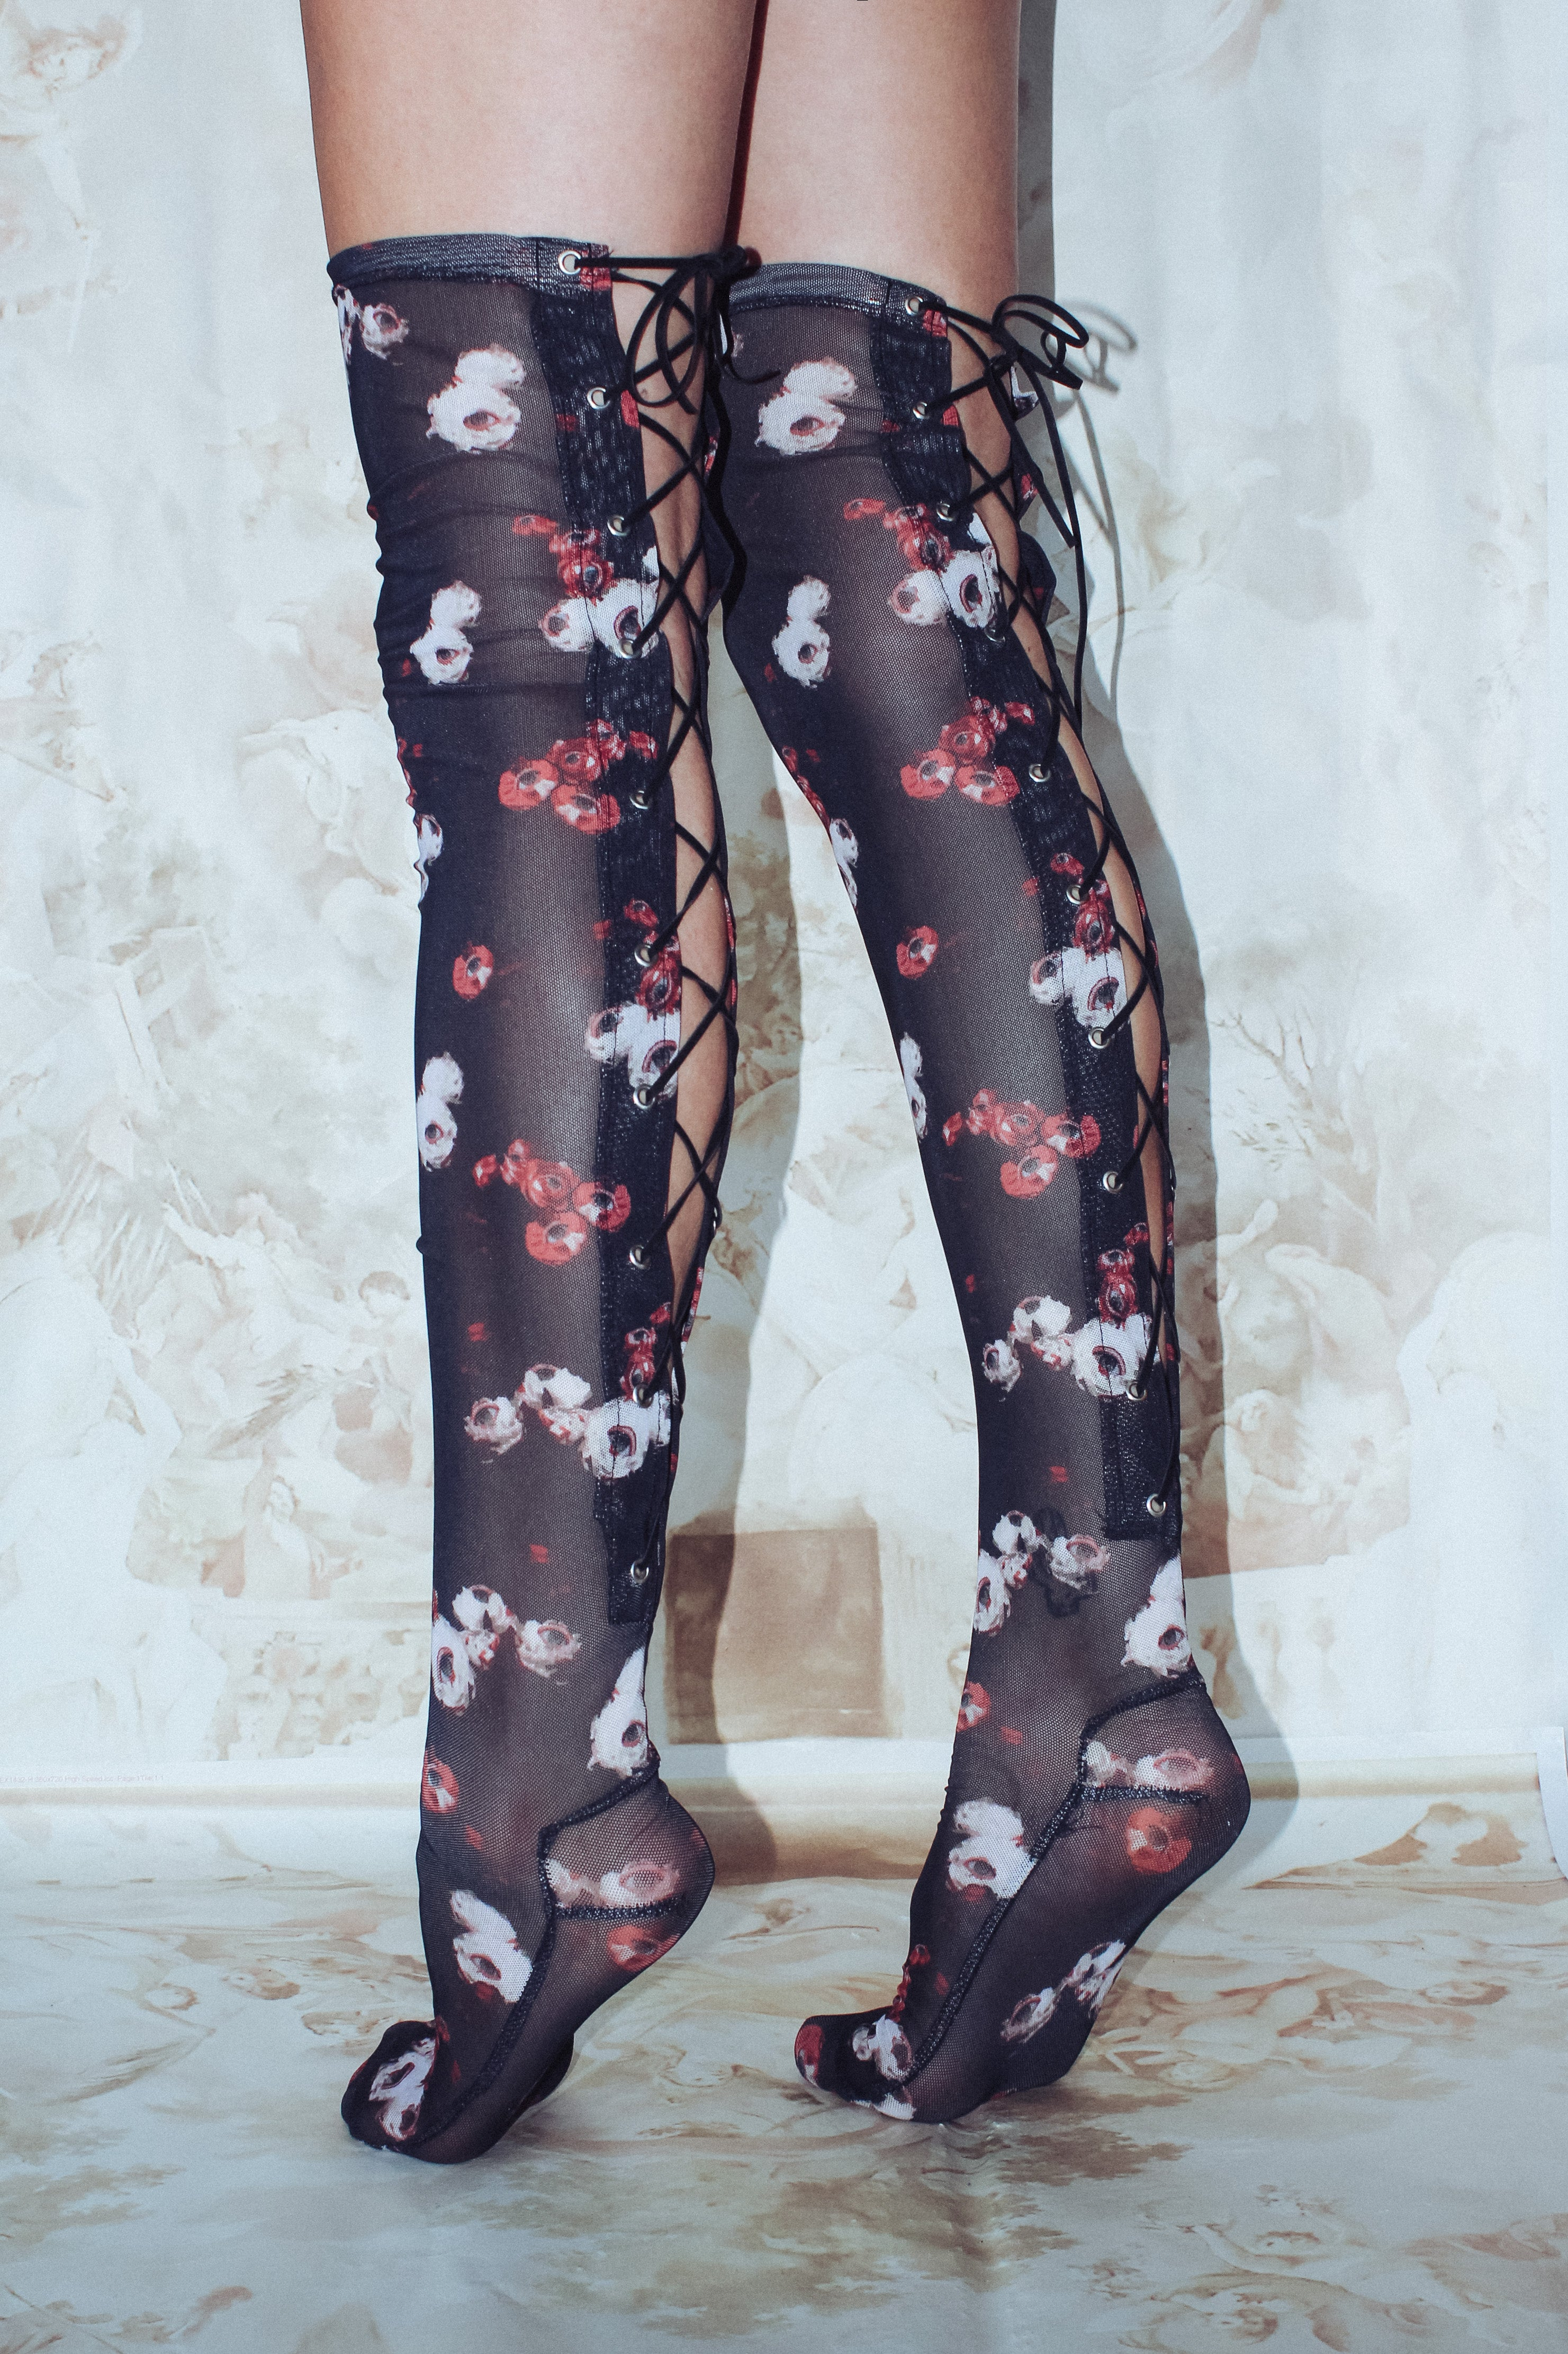 YVES RENOIR THIGH HIGH SOCKS